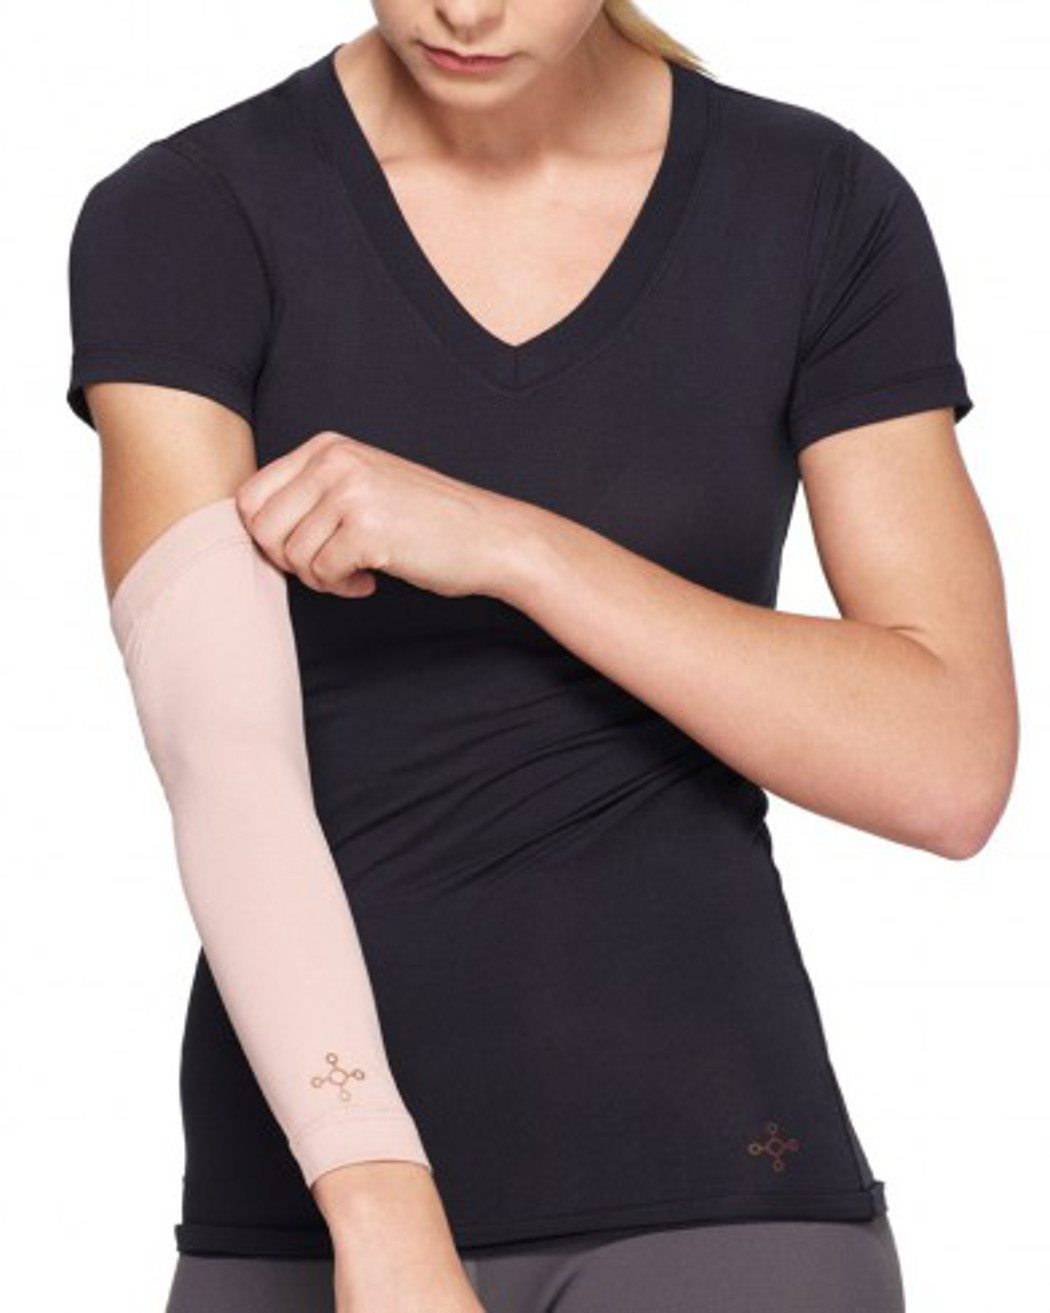 Tommie Copper Women's Core Compression Full Arm Sleeve